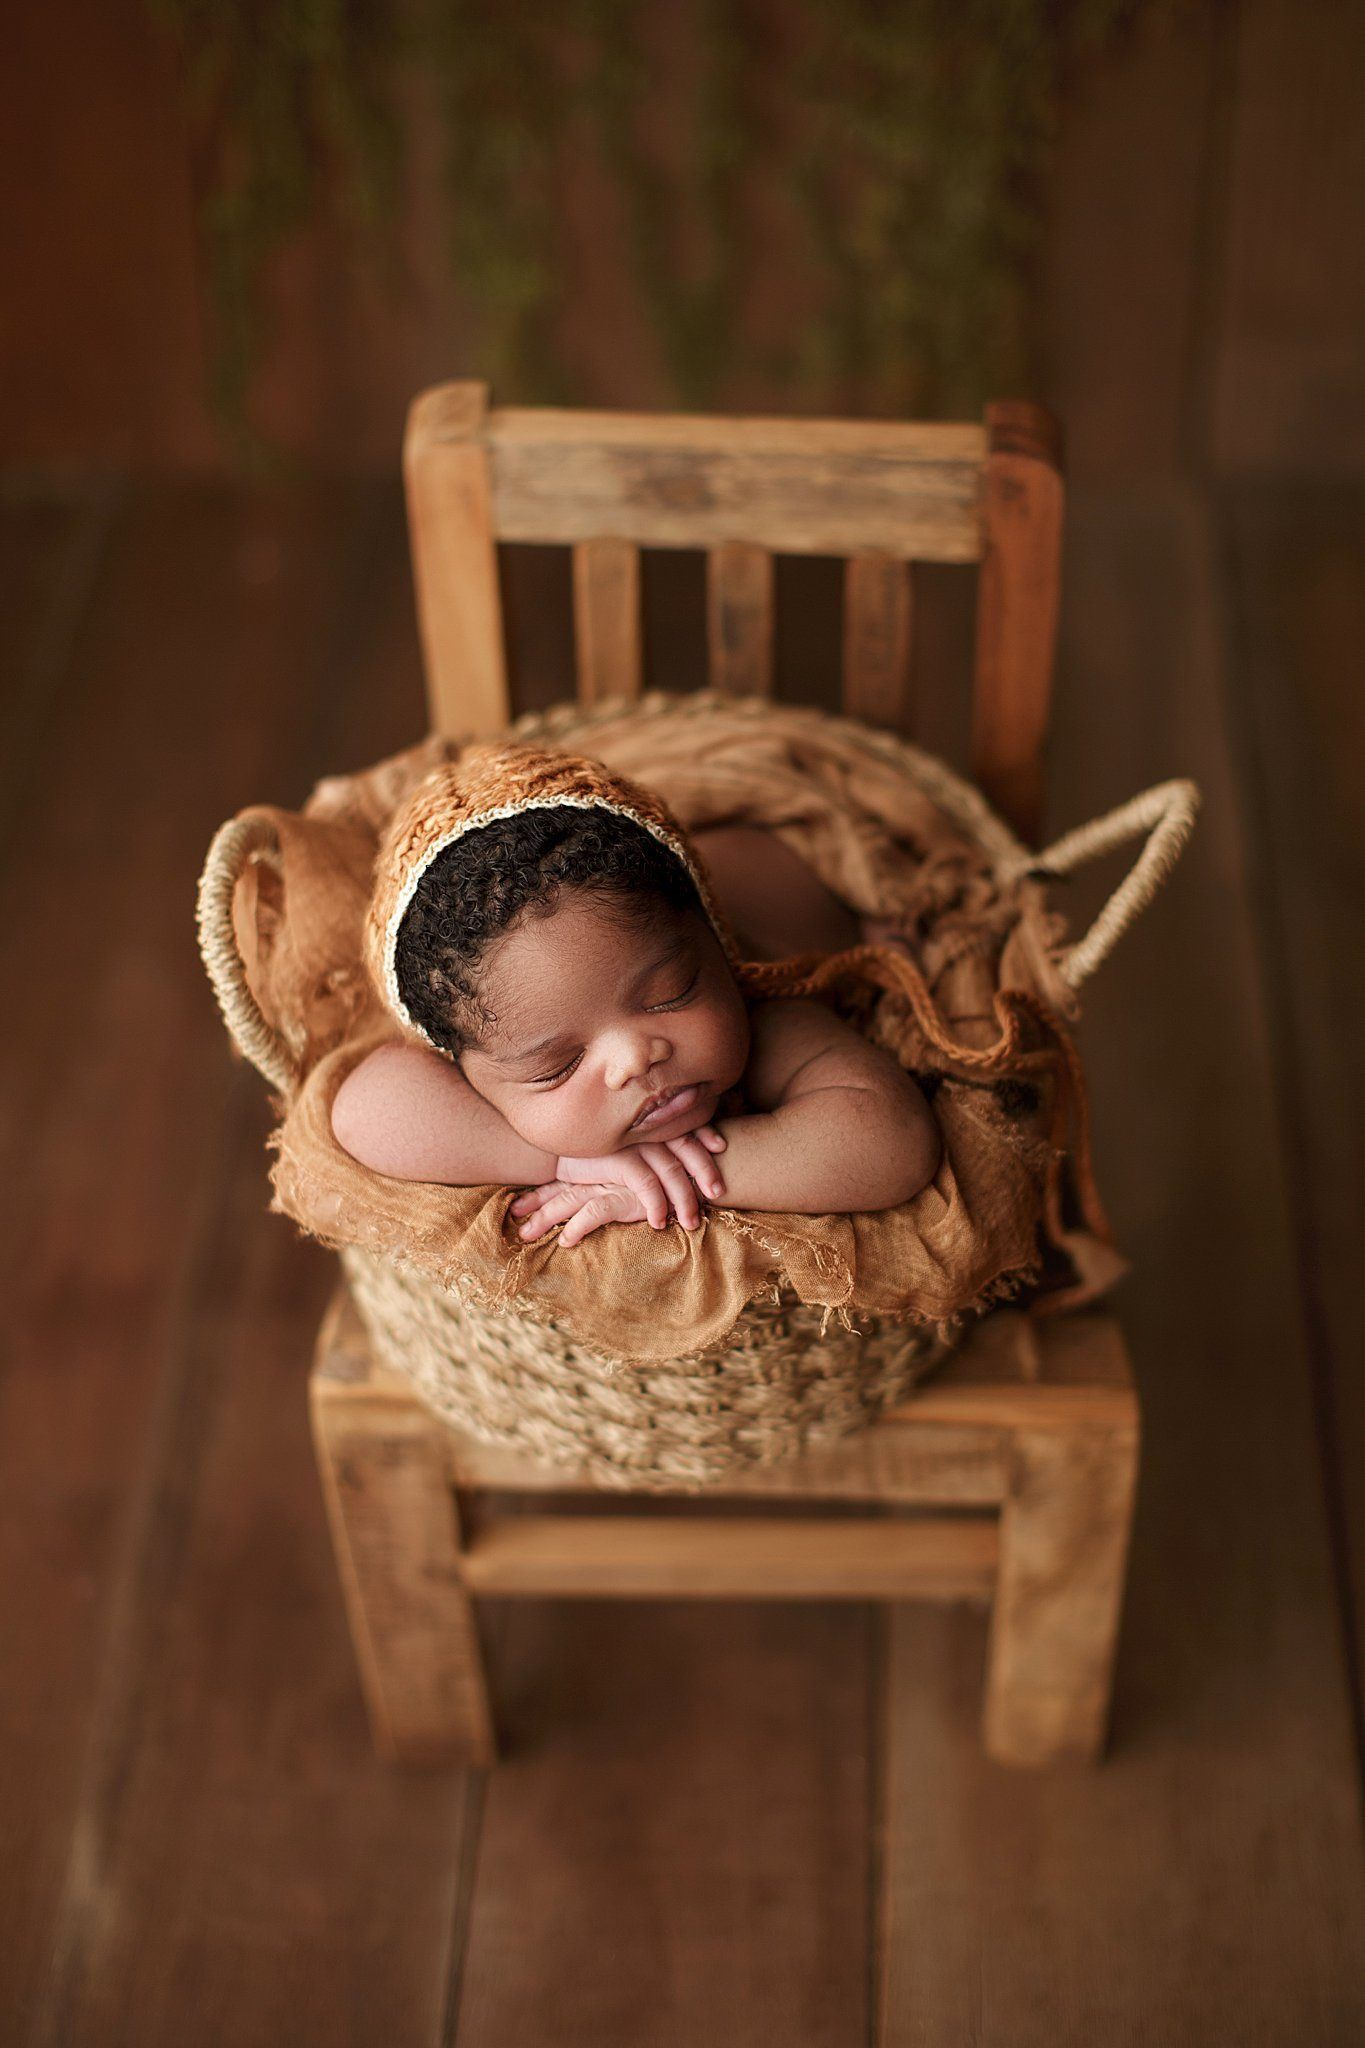 10 Tips for Photographing Babies